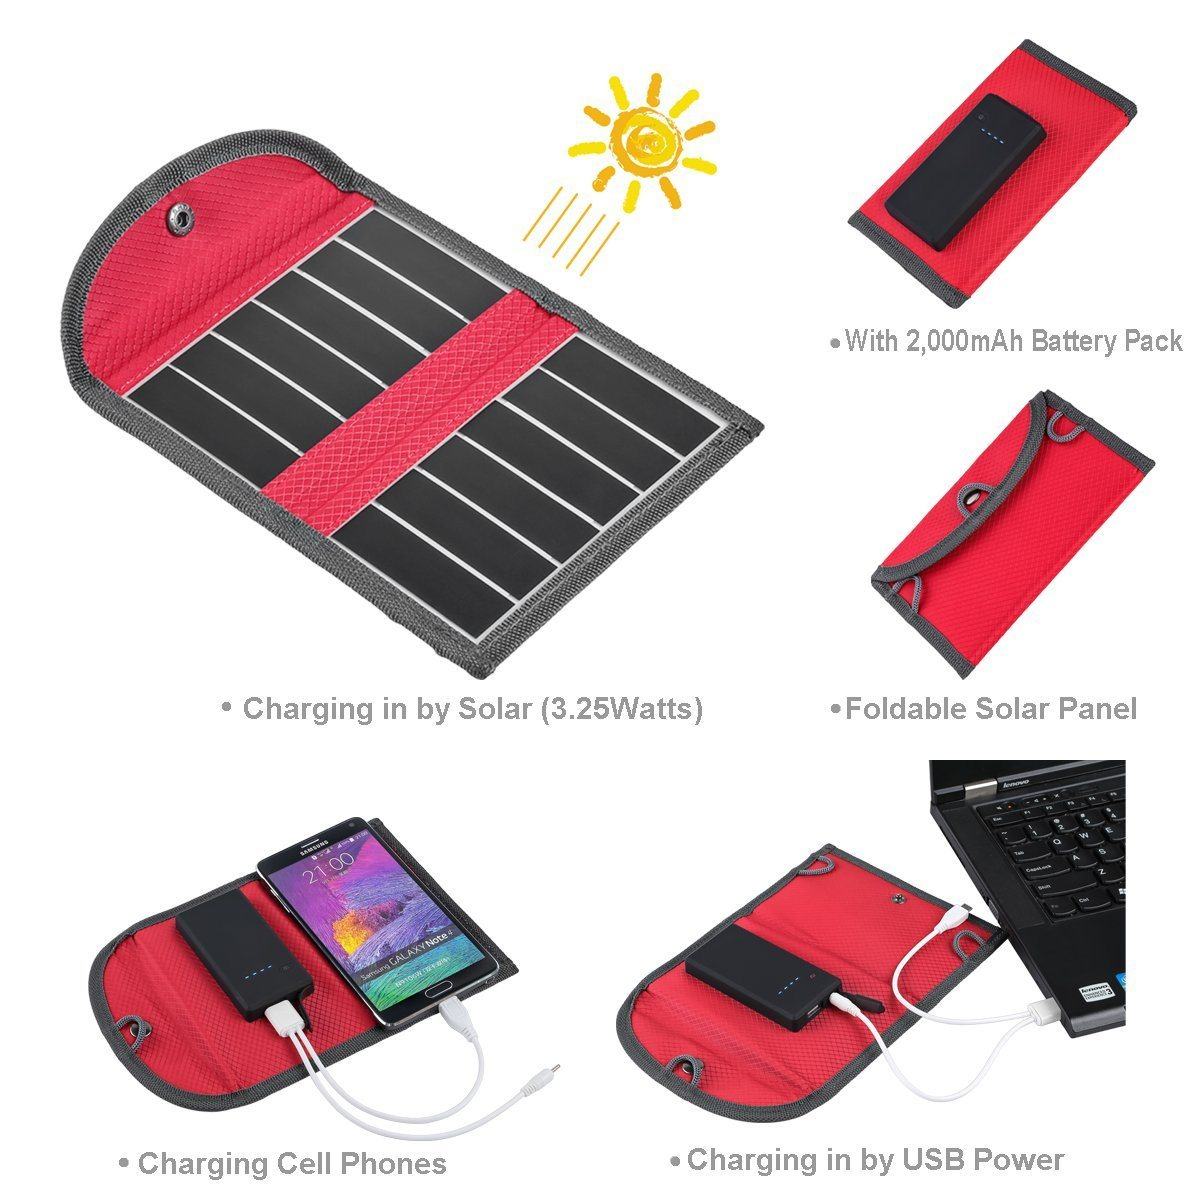 Outdoor Solar Hiking Bag Lightweight Solar Bag, Solar Folding Backpack pictures & photos